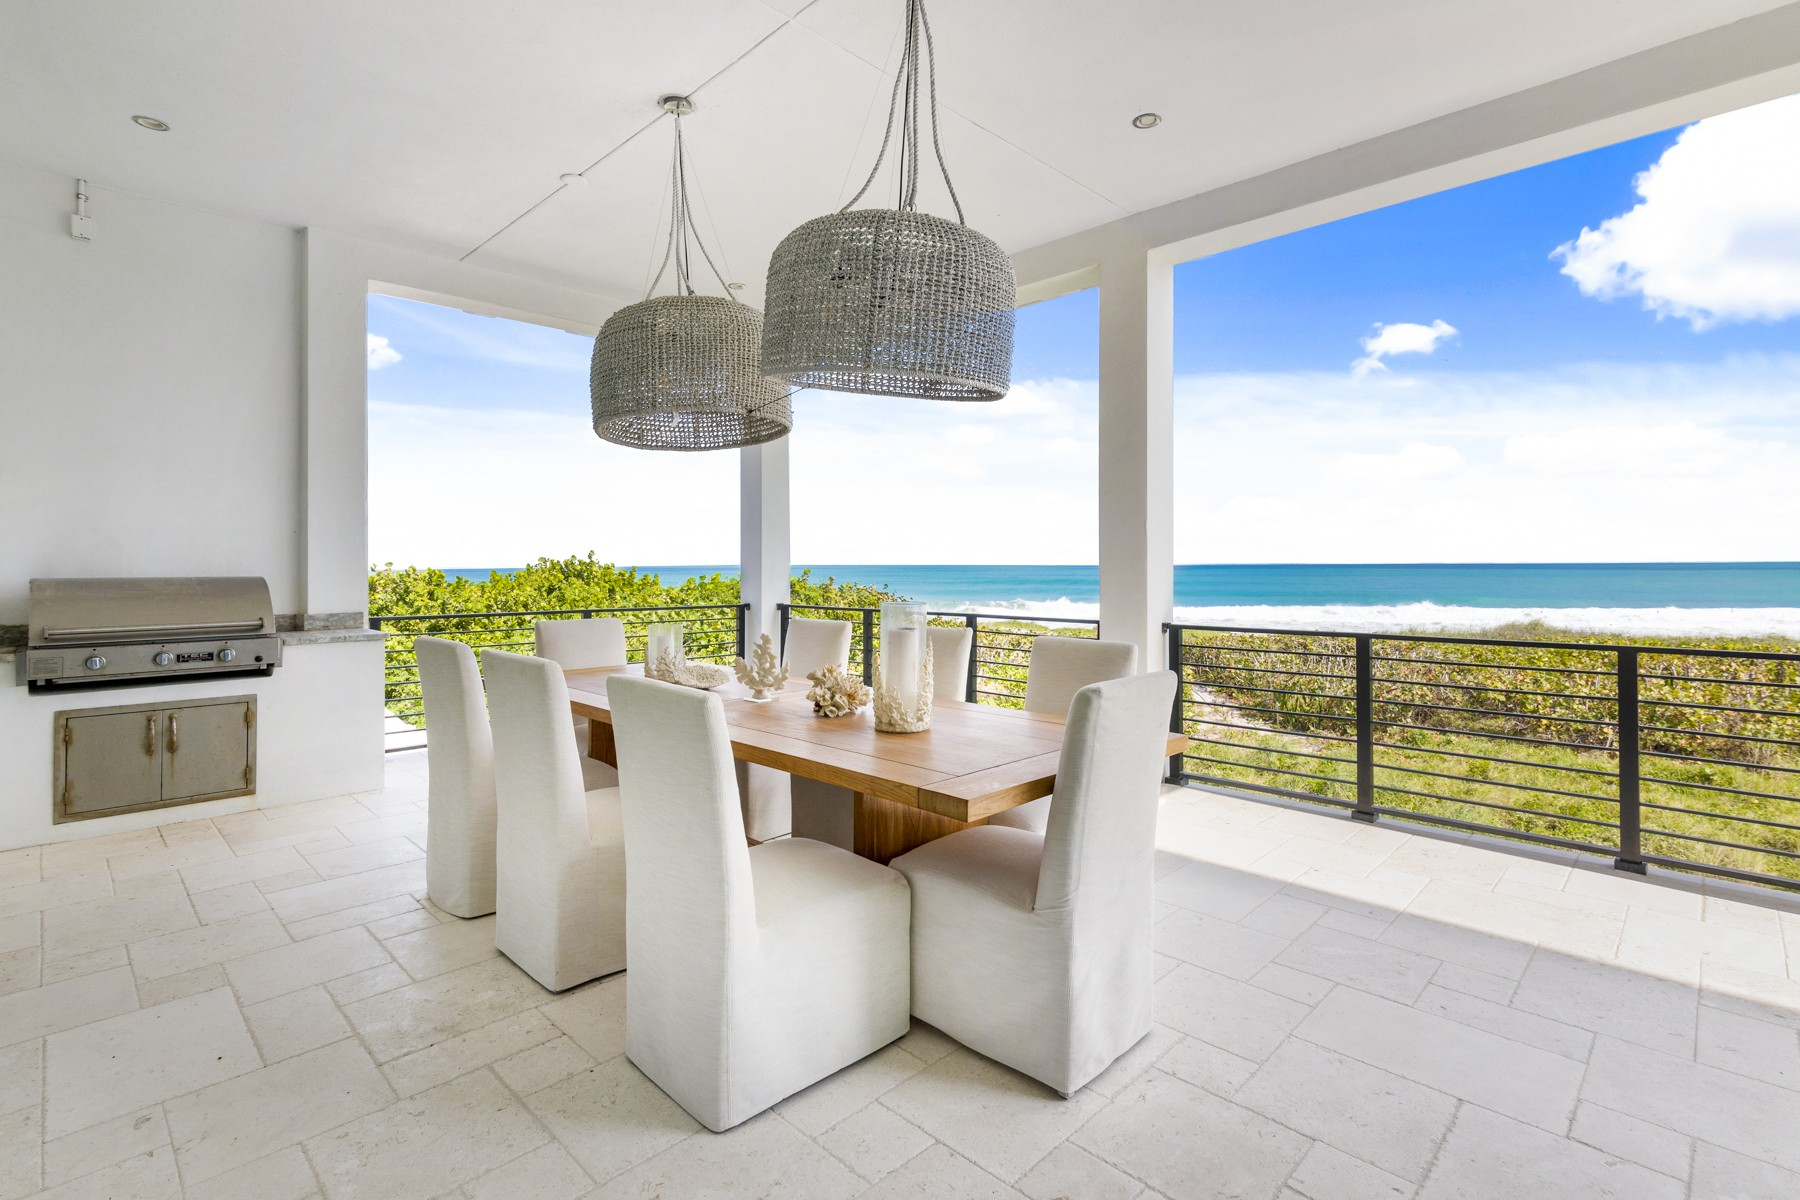 Additional photo for property listing at Oceanfront Designer Masterpiece 4440 N Highway A1A Hutchinson Island, Florida 34949 United States